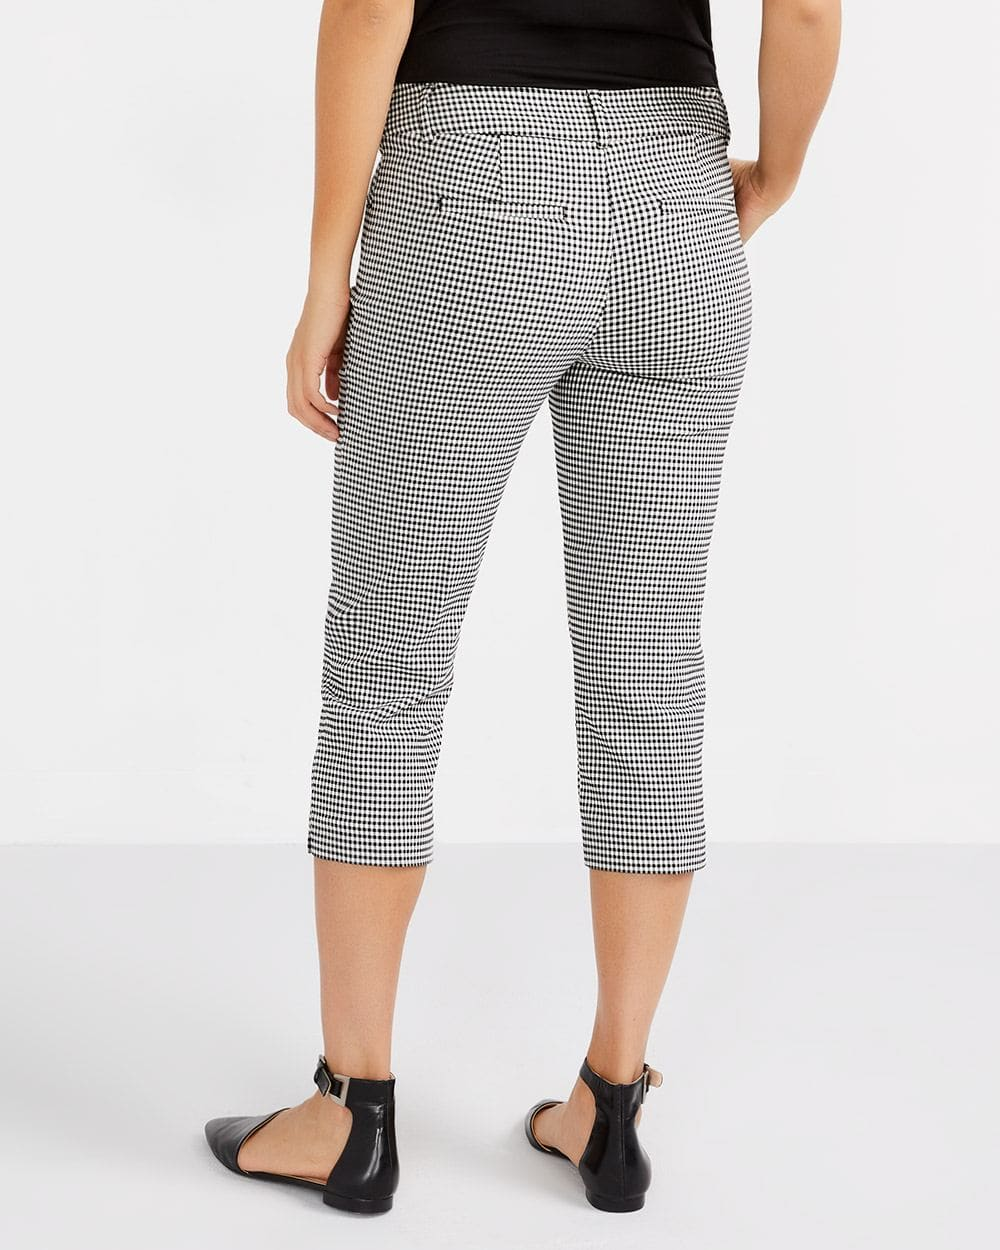 The Iconic Gingham Capris